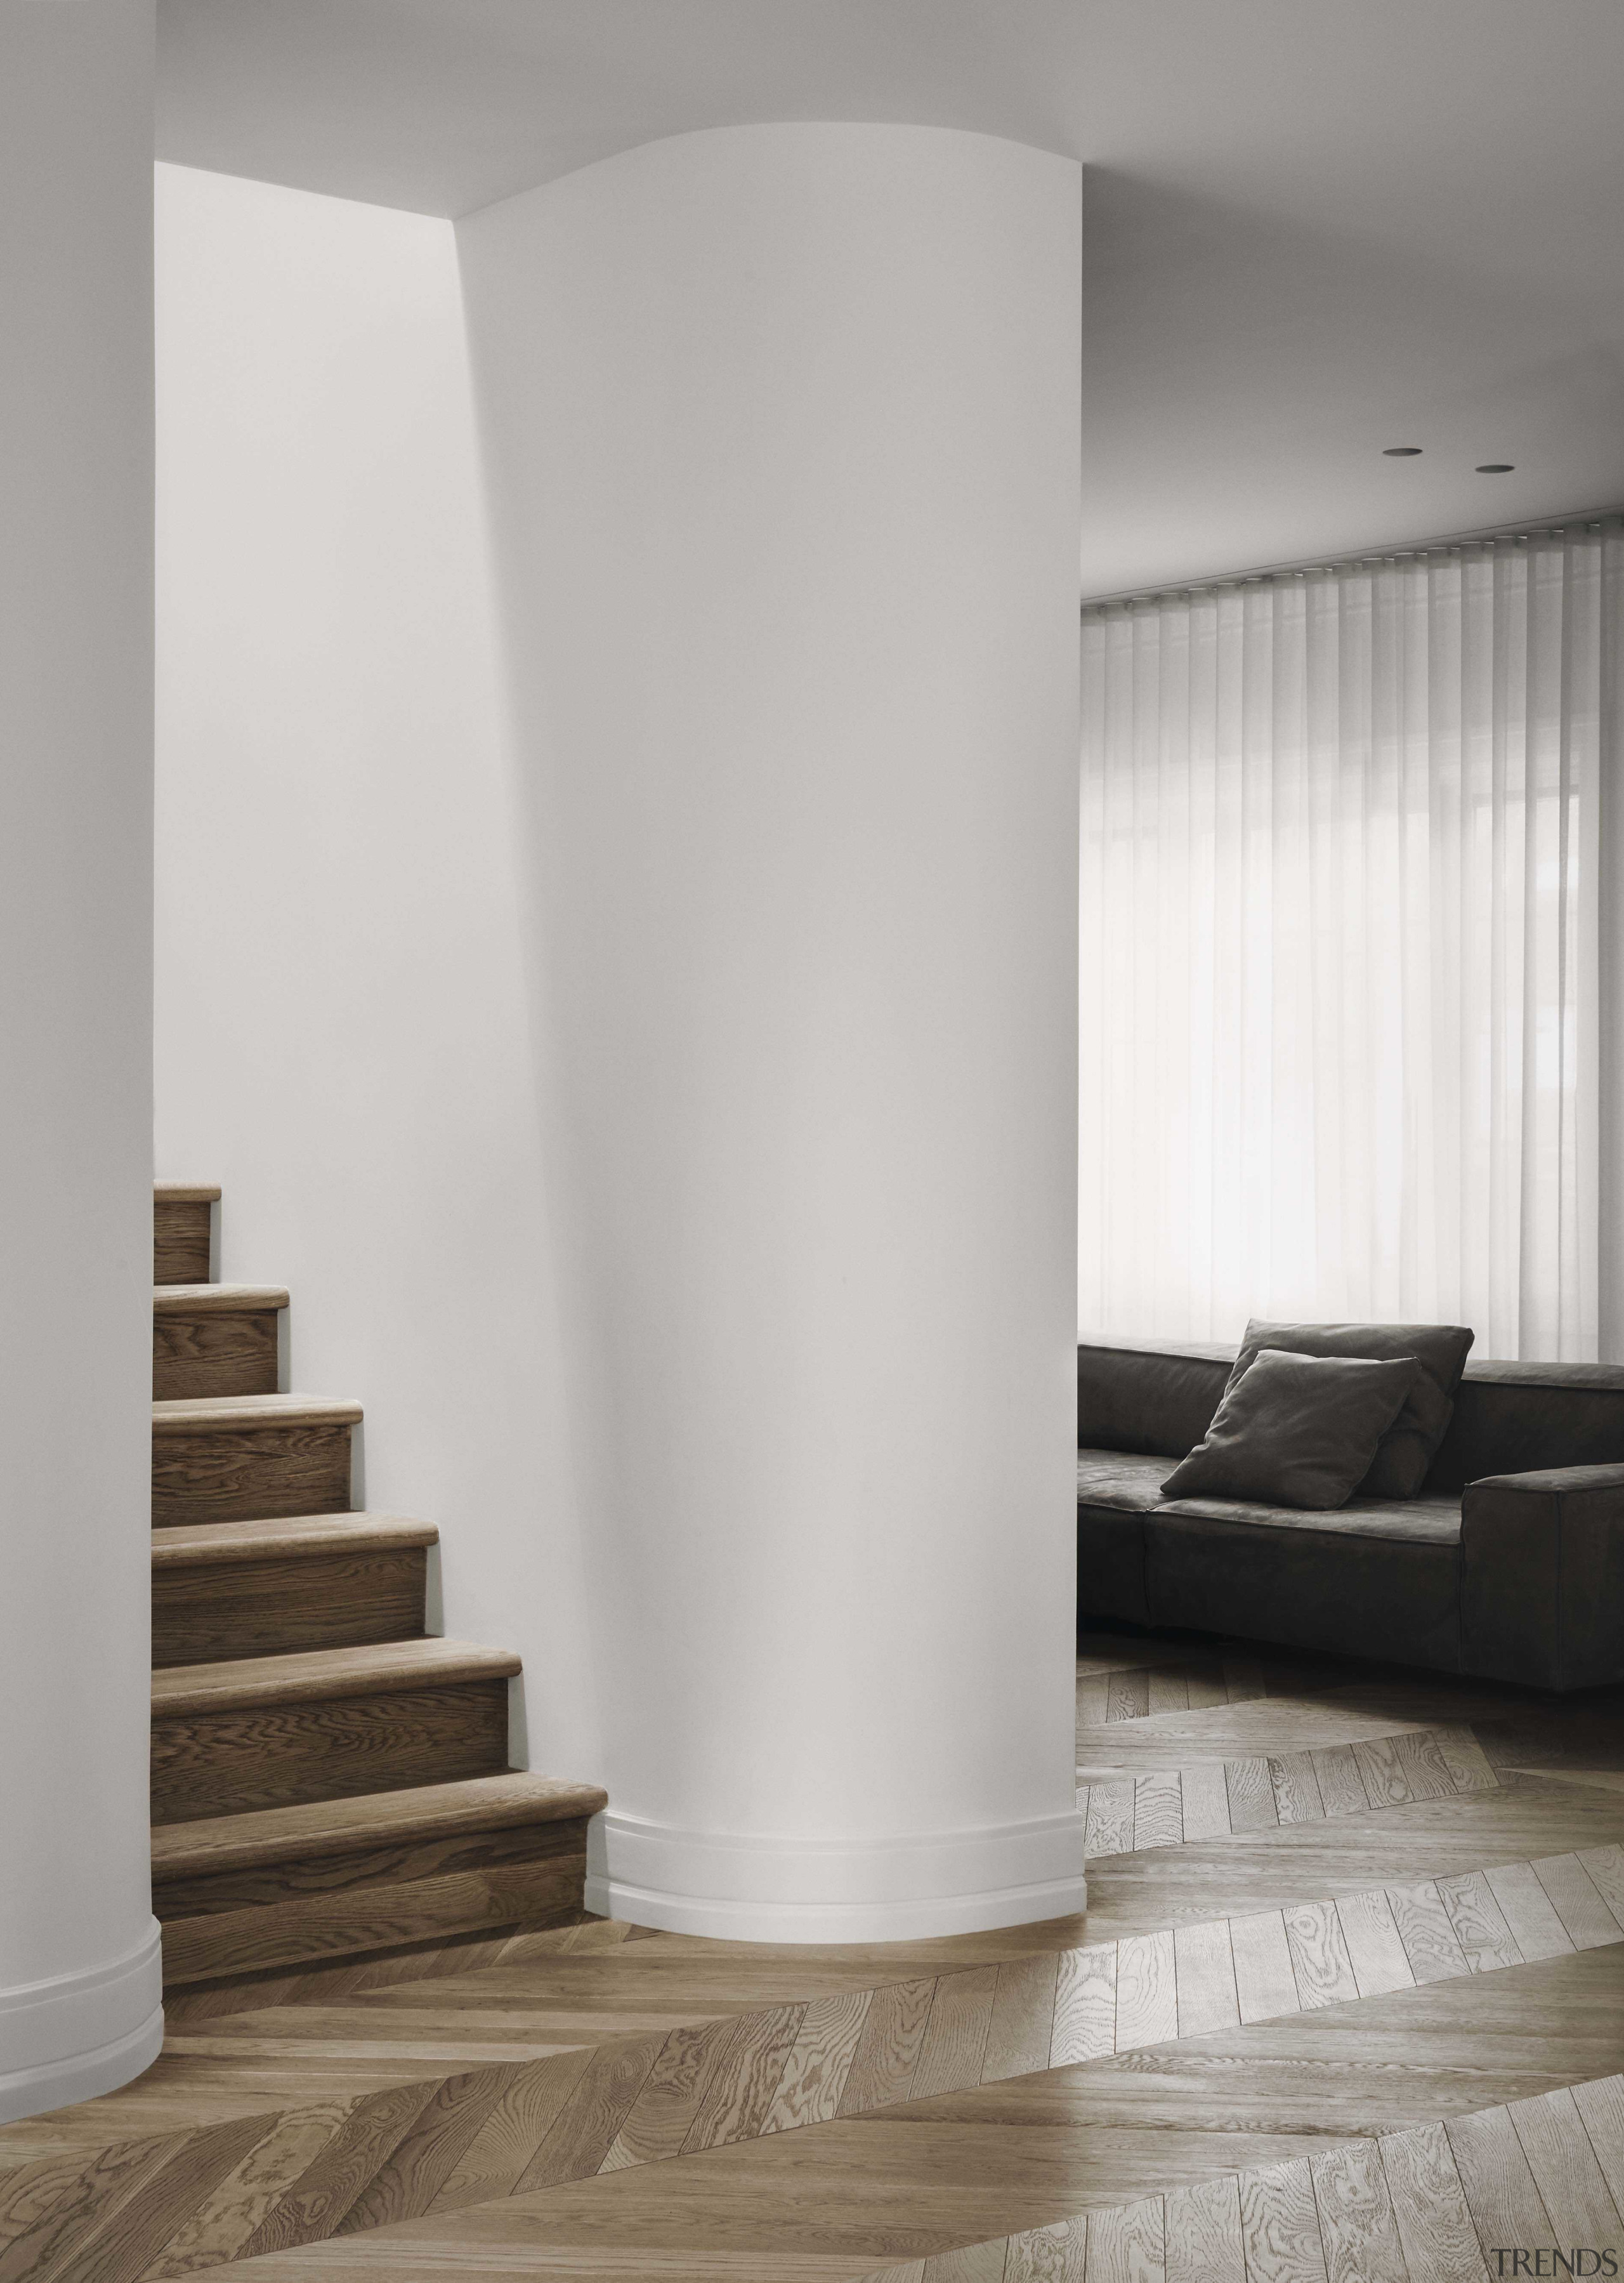 Notable interior architectural details include carefully selected materials,